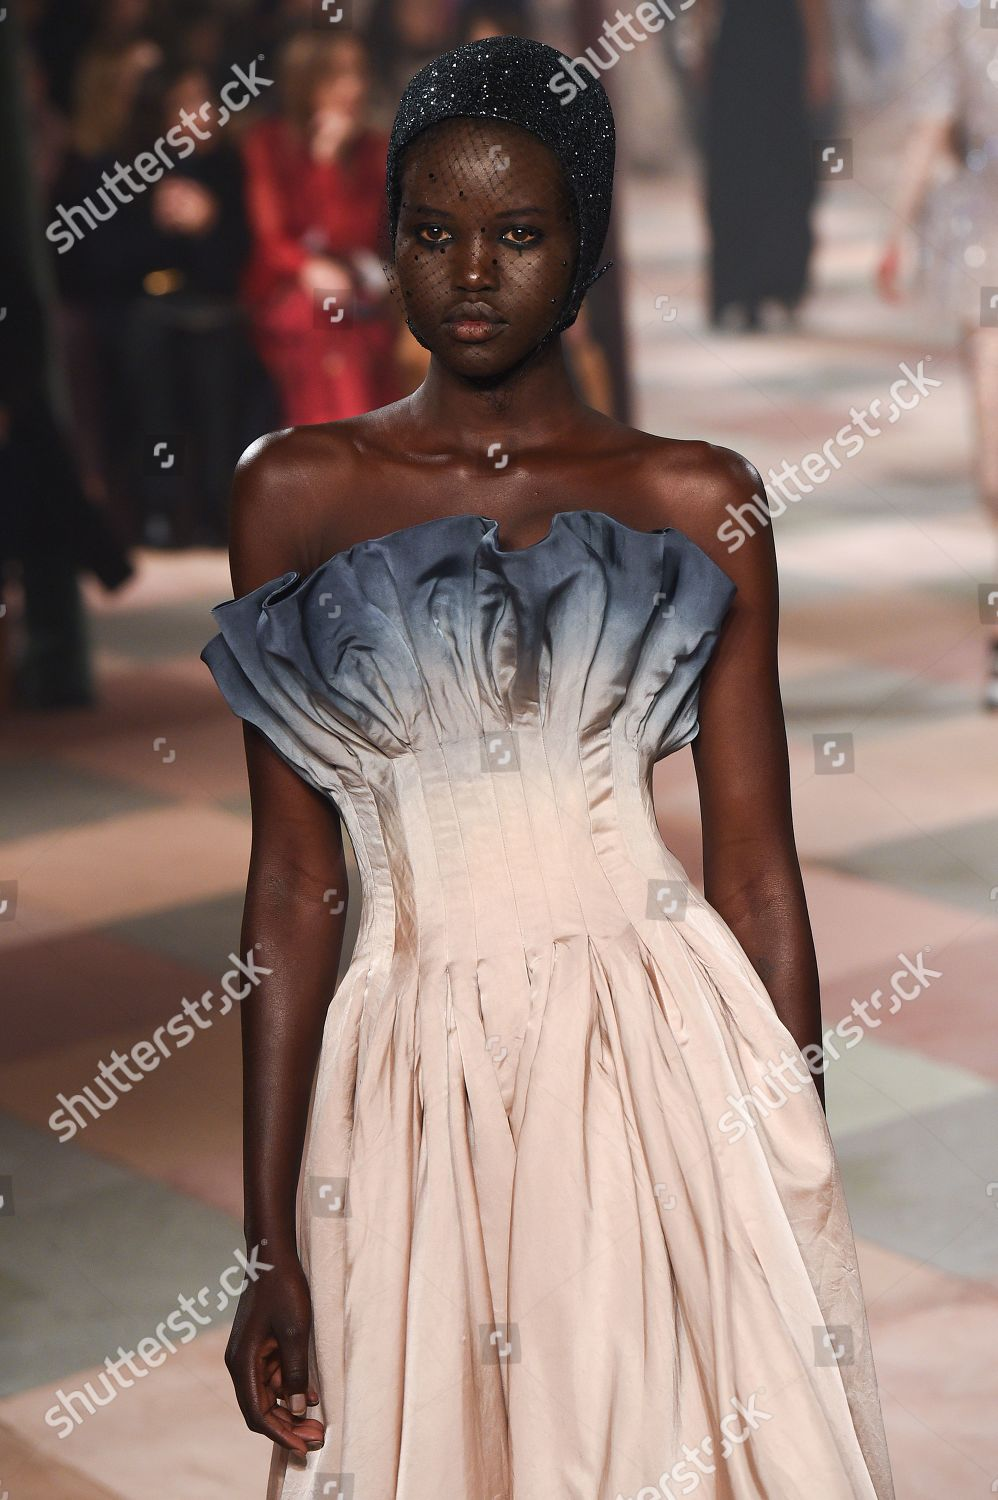 ab09381127 Christian Dior show, Runway, Spring Summer 2019, Haute Couture Fashion  Week, Paris, France Stock Image by Pixelformula for editorial use, Jan 21,  2019